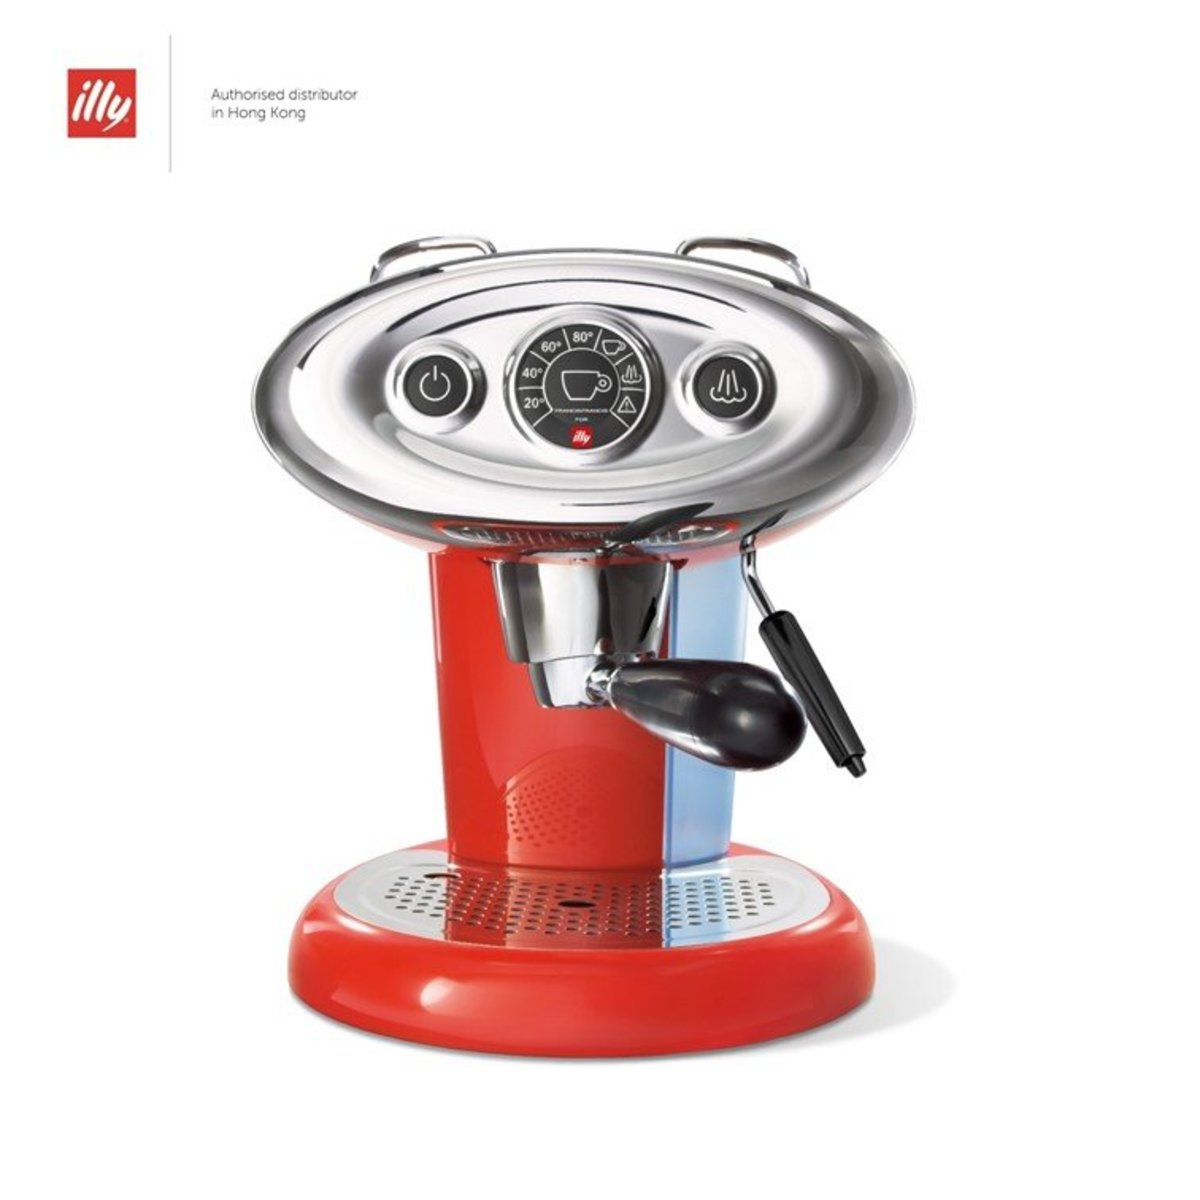 X7.1 IperEspresso Home Espresso Capsule Machine - Red